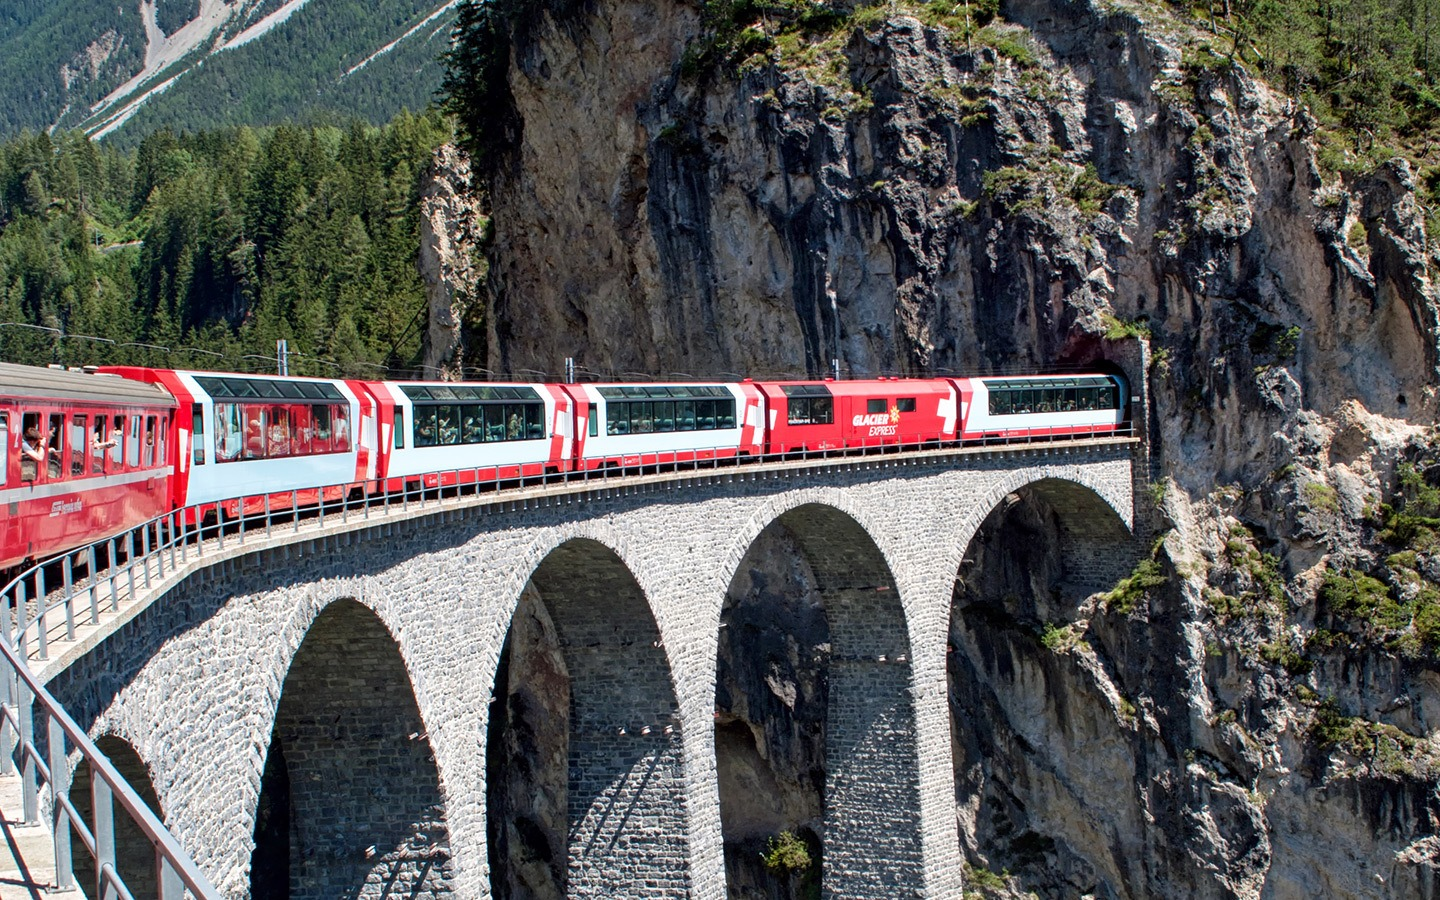 Glacier Express scenic train crossing the Landwasser Viaduct in Switzerland